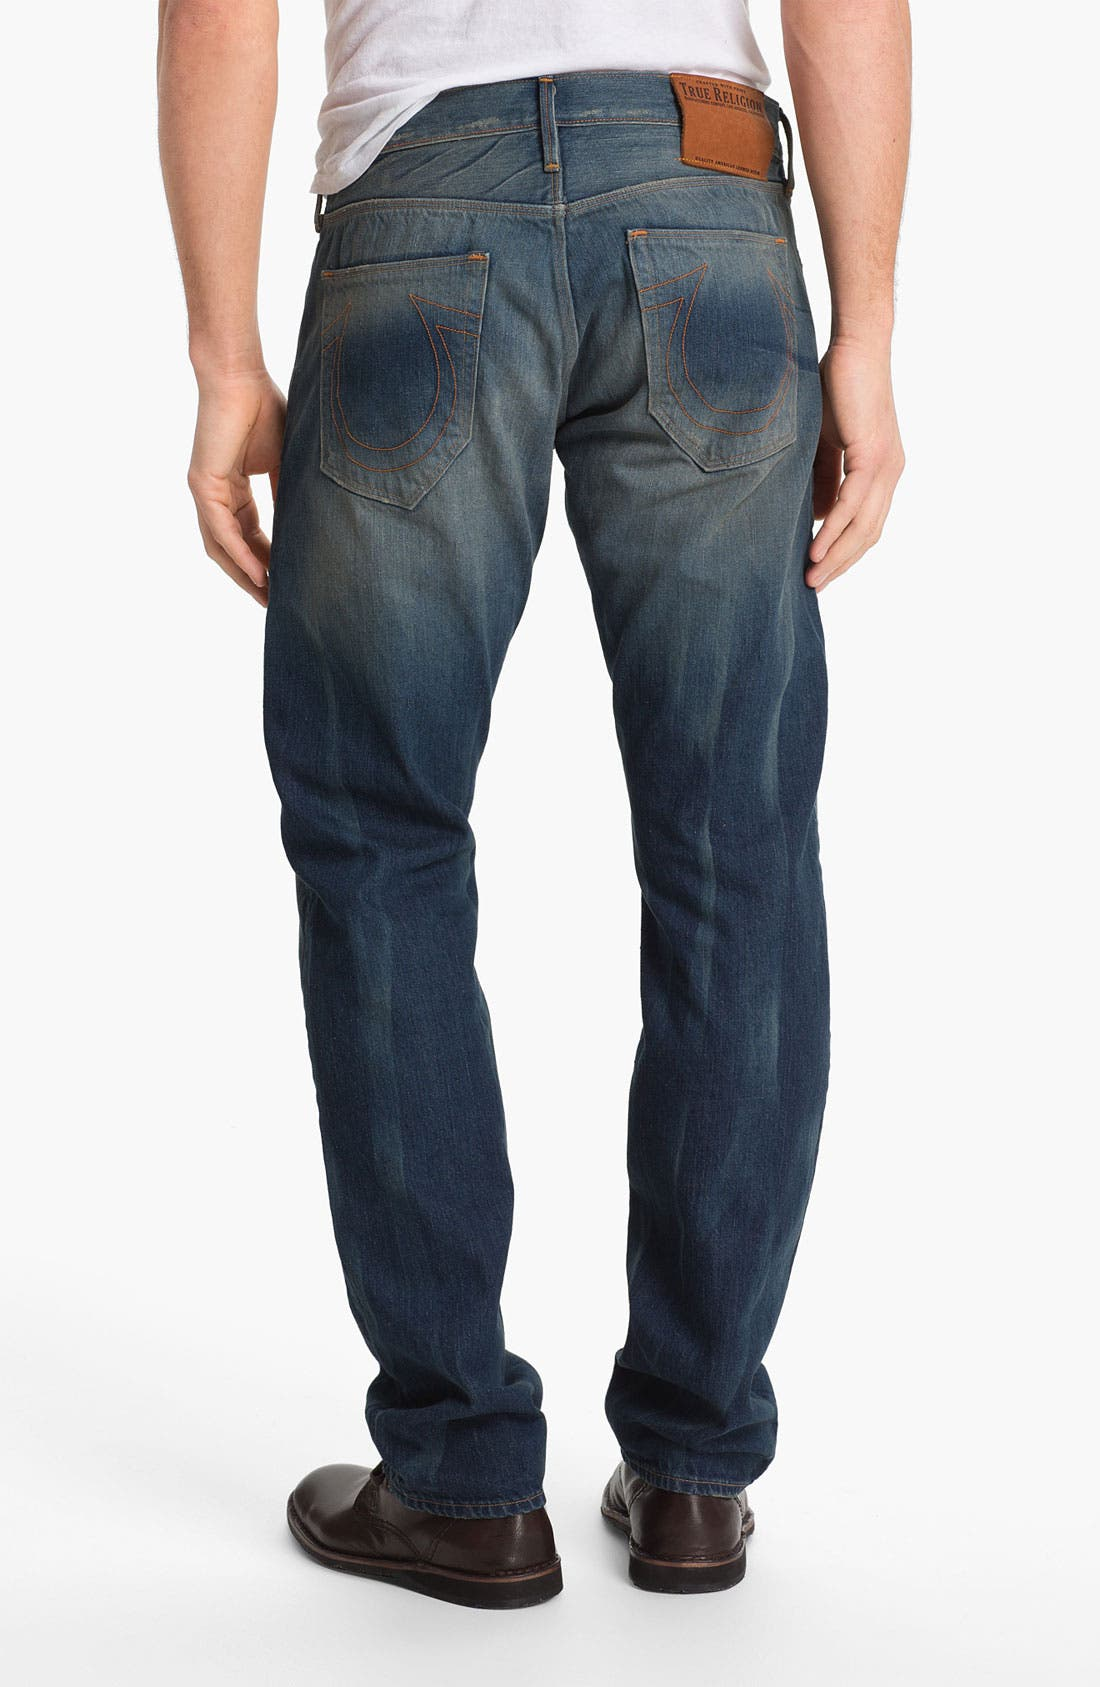 Alternate Image 1 Selected - True Religion Brand Jeans 'Geno 50s' Slim Straight Leg Jeans (Deadwood)